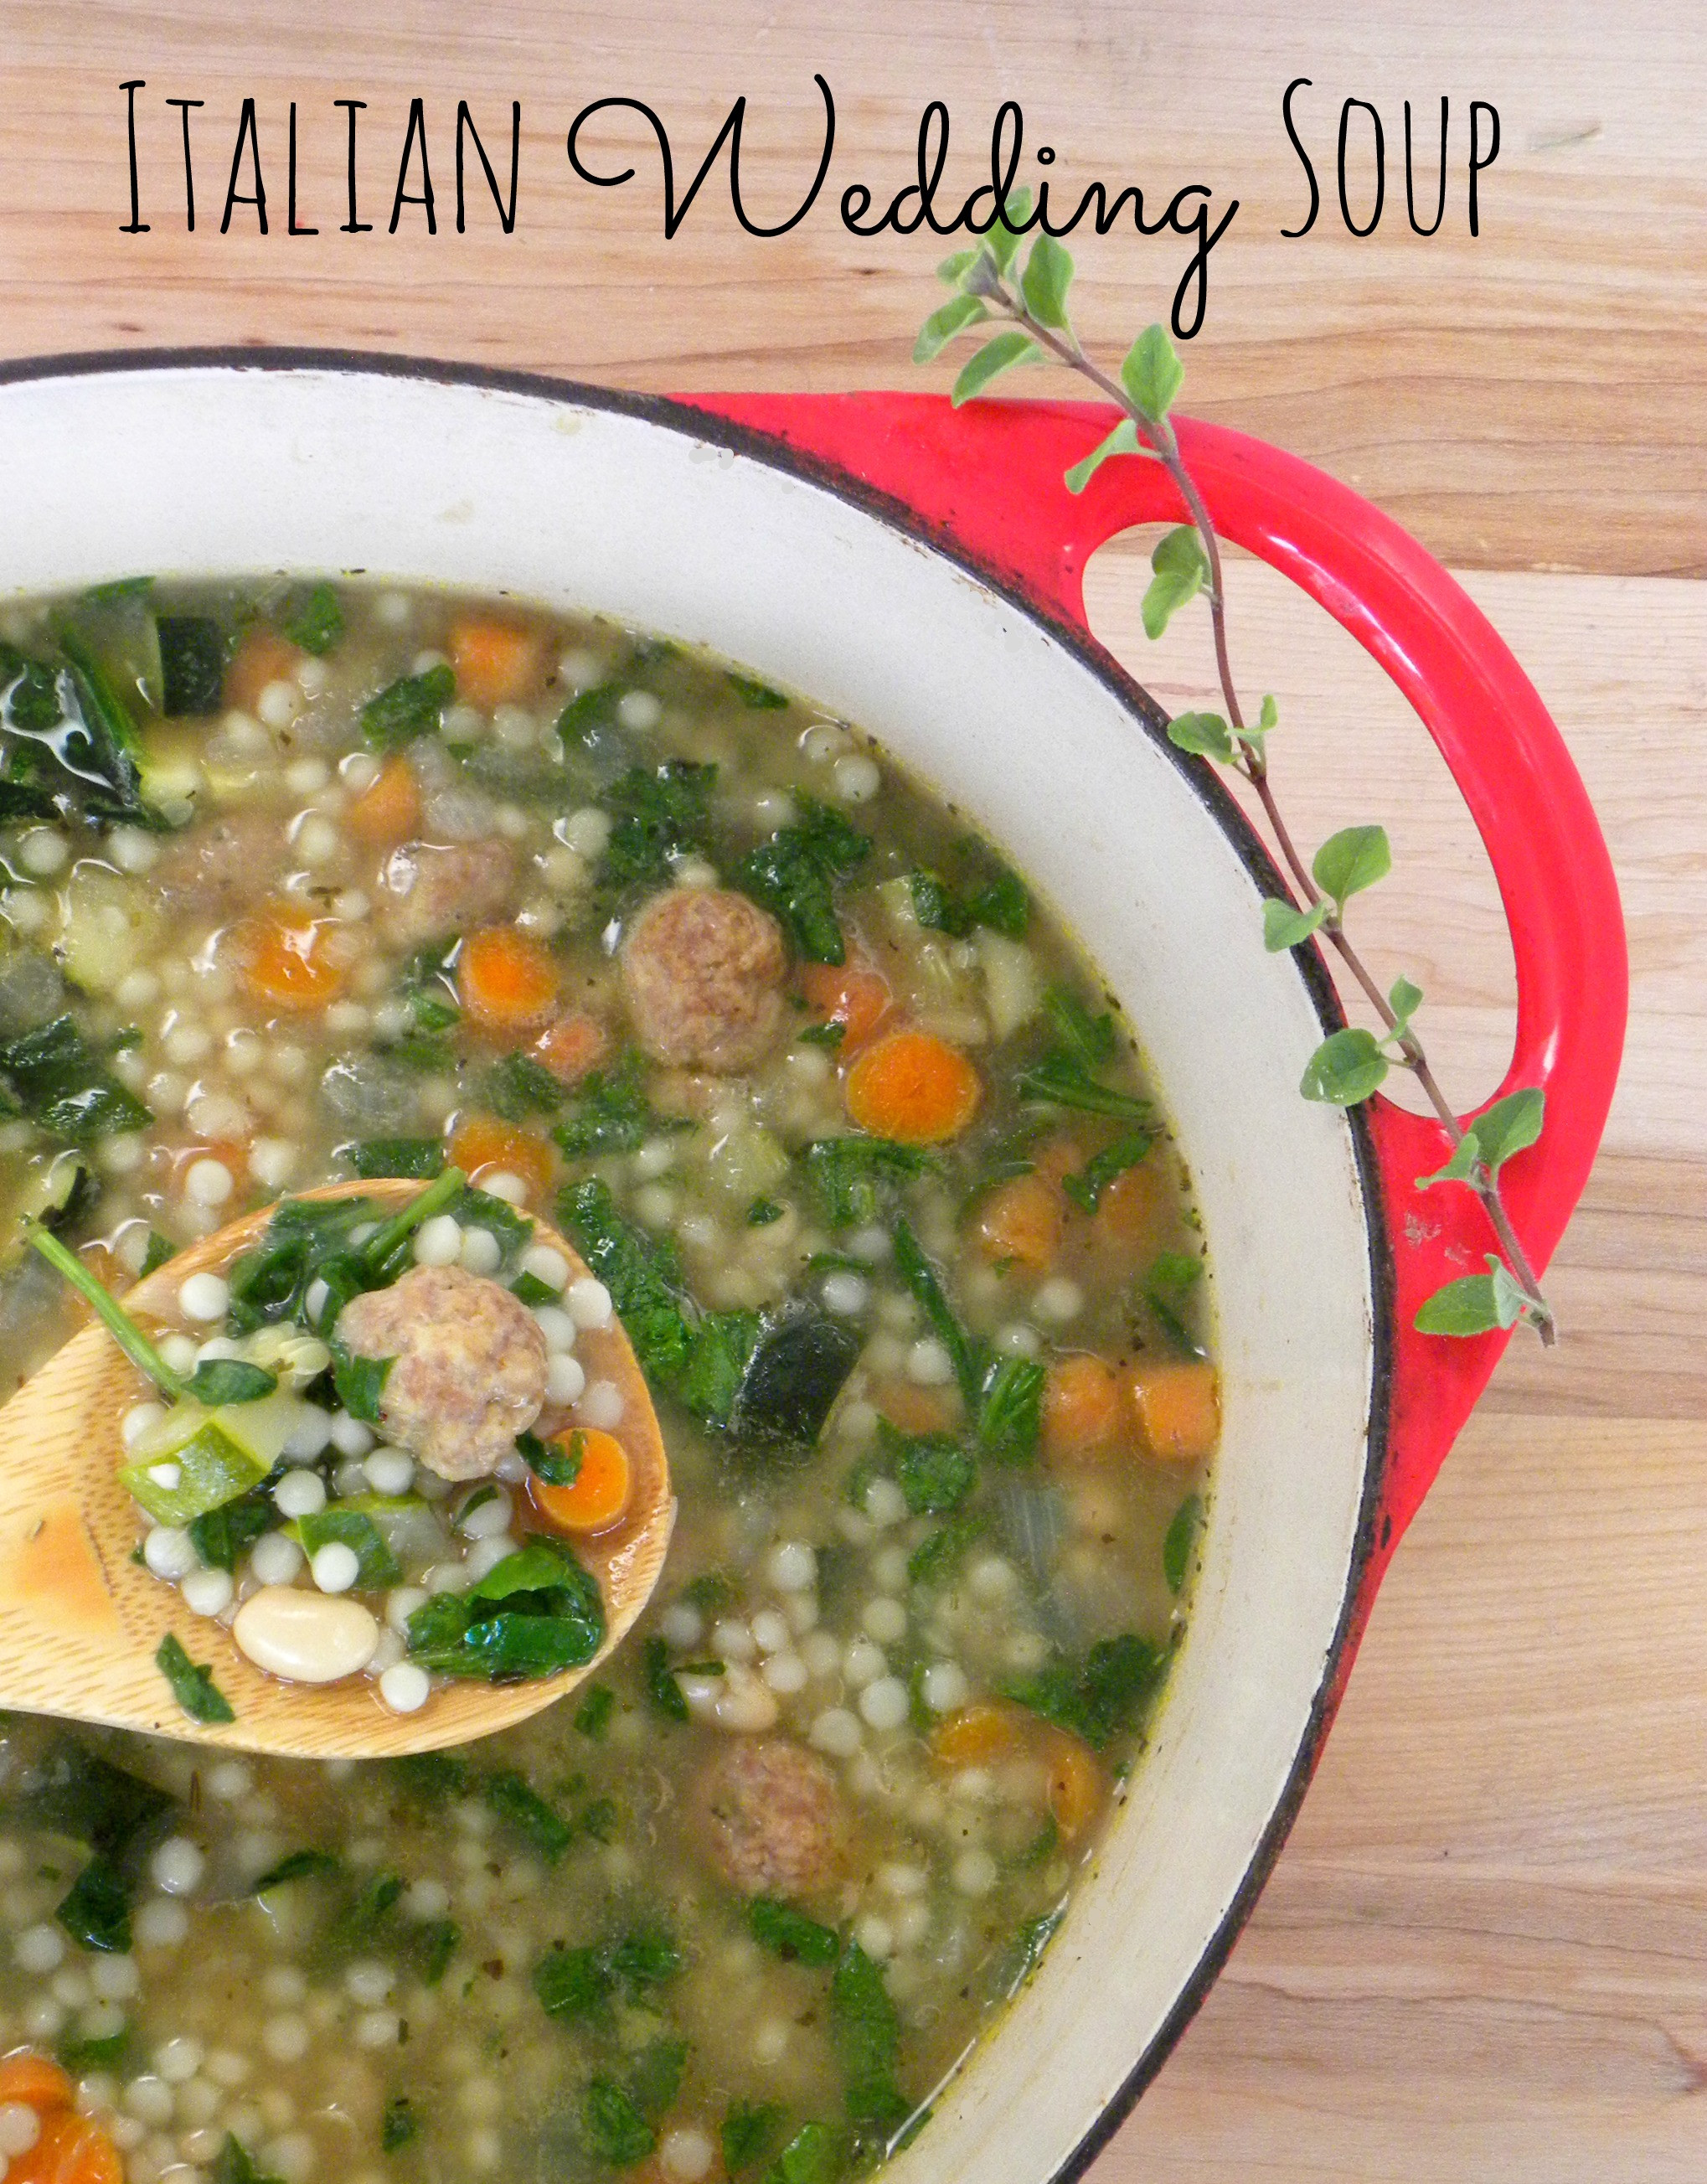 Italian Wedding Soup Recipes With Spinach  Italian Wedding Soup with Turkey Meatballs